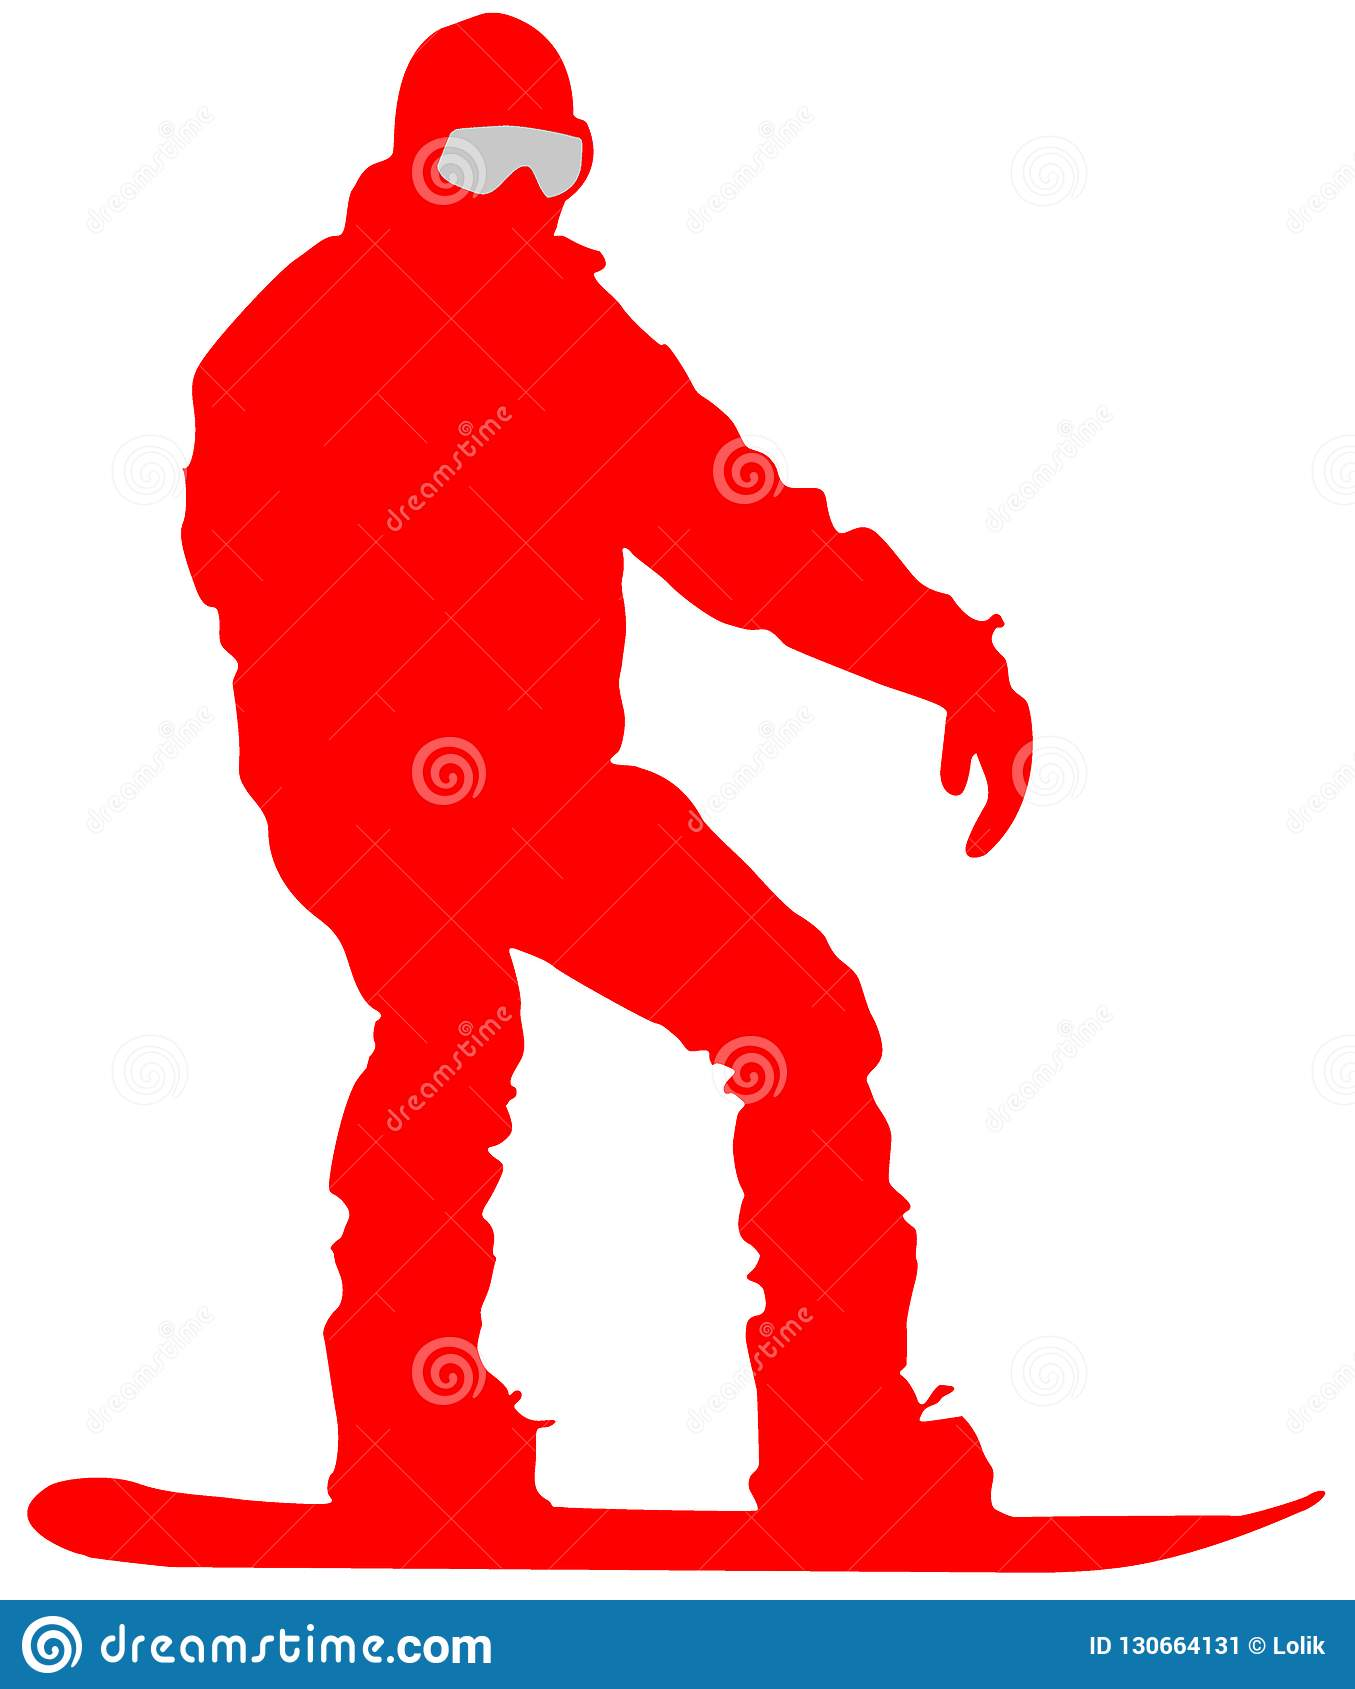 Red Snowboarder Flat Icon on White Background